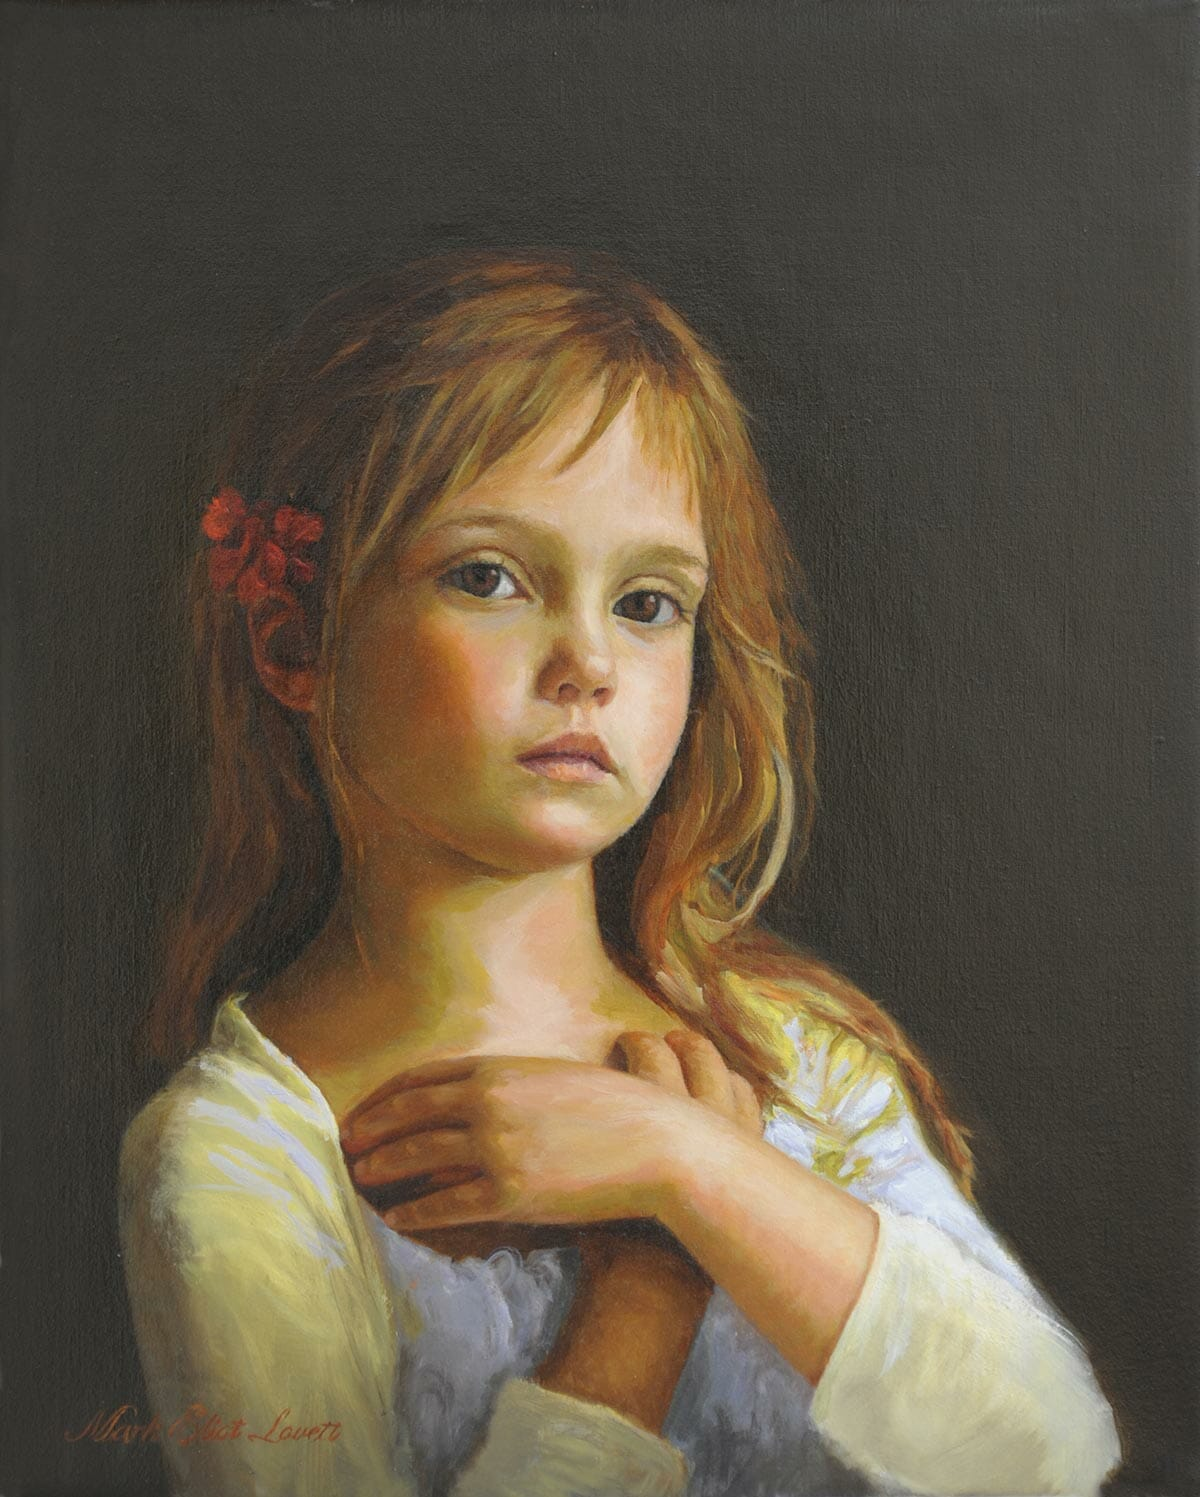 Commission a Portrait Oil Painting by Mark Lovett at marklovettstudio.com in Gaithersburg, MD